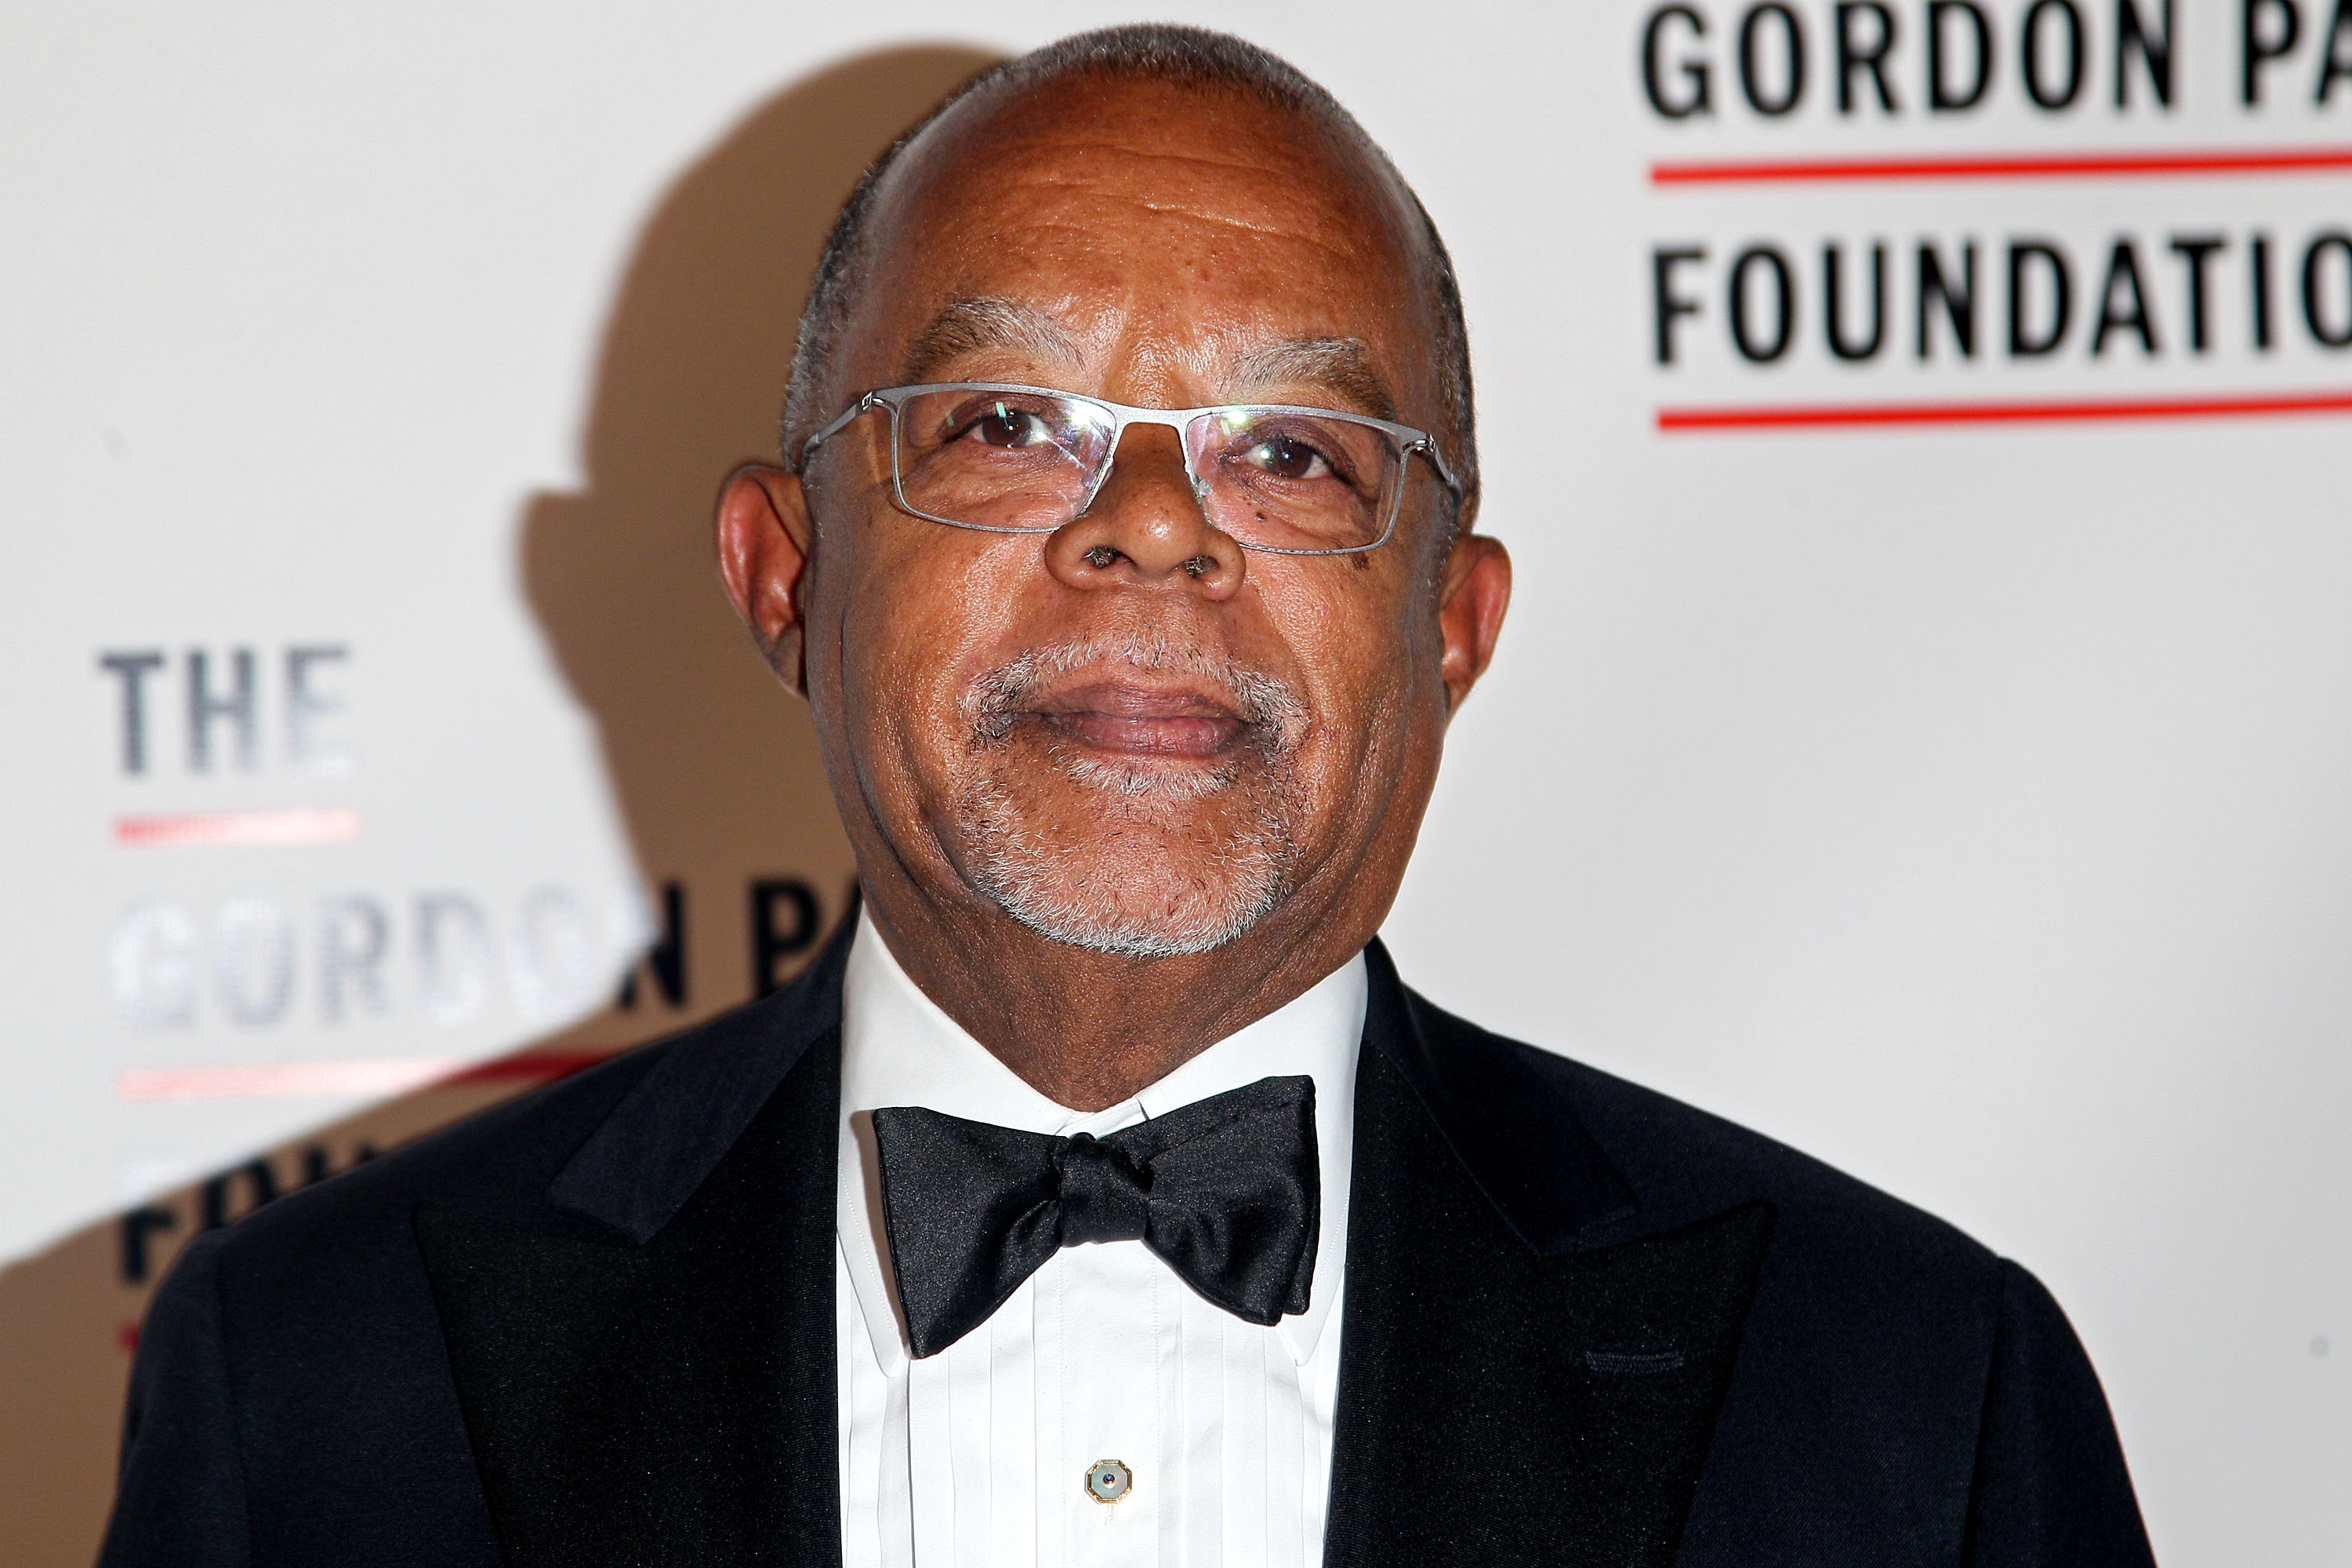 Henry Louis Gates Jr. attends the 2016 Gordon Parks Foundation Awards Dinner at Cipriani 42nd Street on May 24, 2016 in New York City.